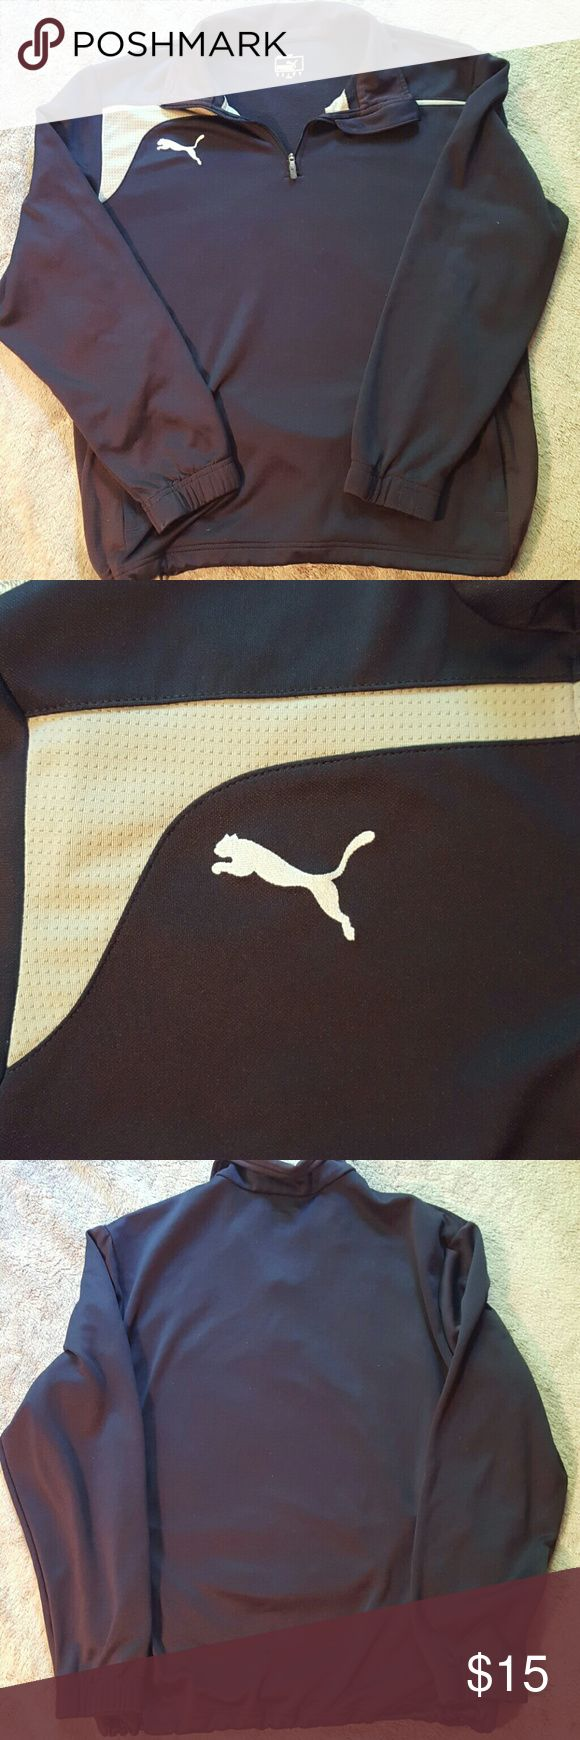 Dark blue Puma pullover Tighten at waist. Fits a small or medium, tag says M. Men's or women's. GUC Puma Shirts